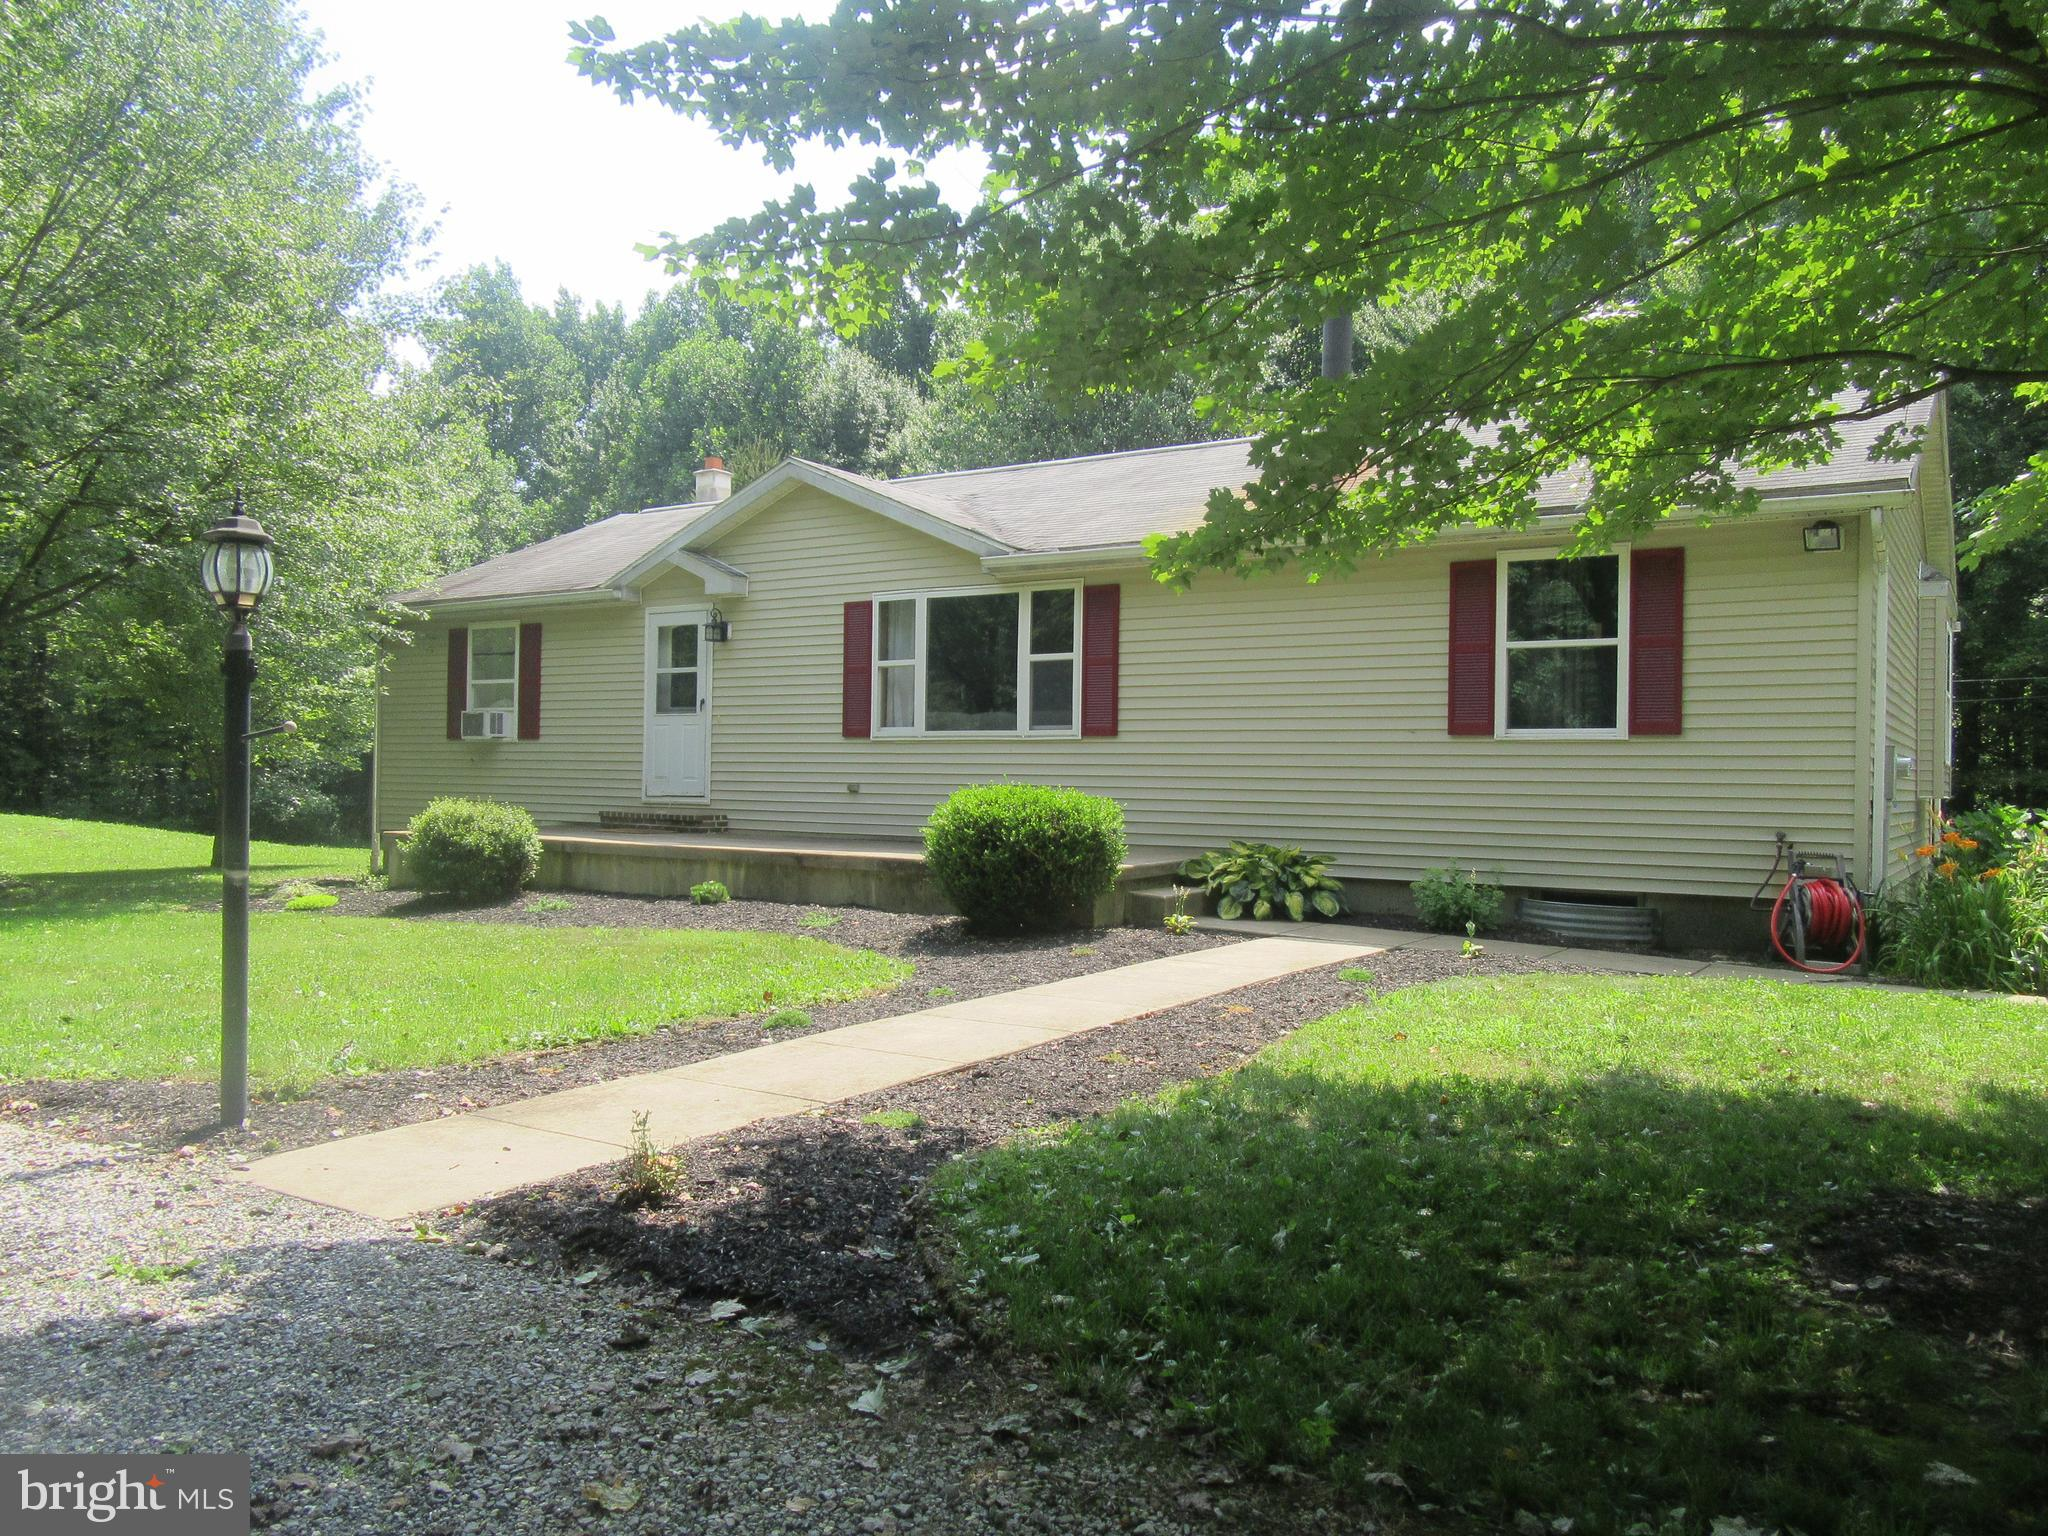 541 AIRPORT ROAD, BETHEL, PA 19507